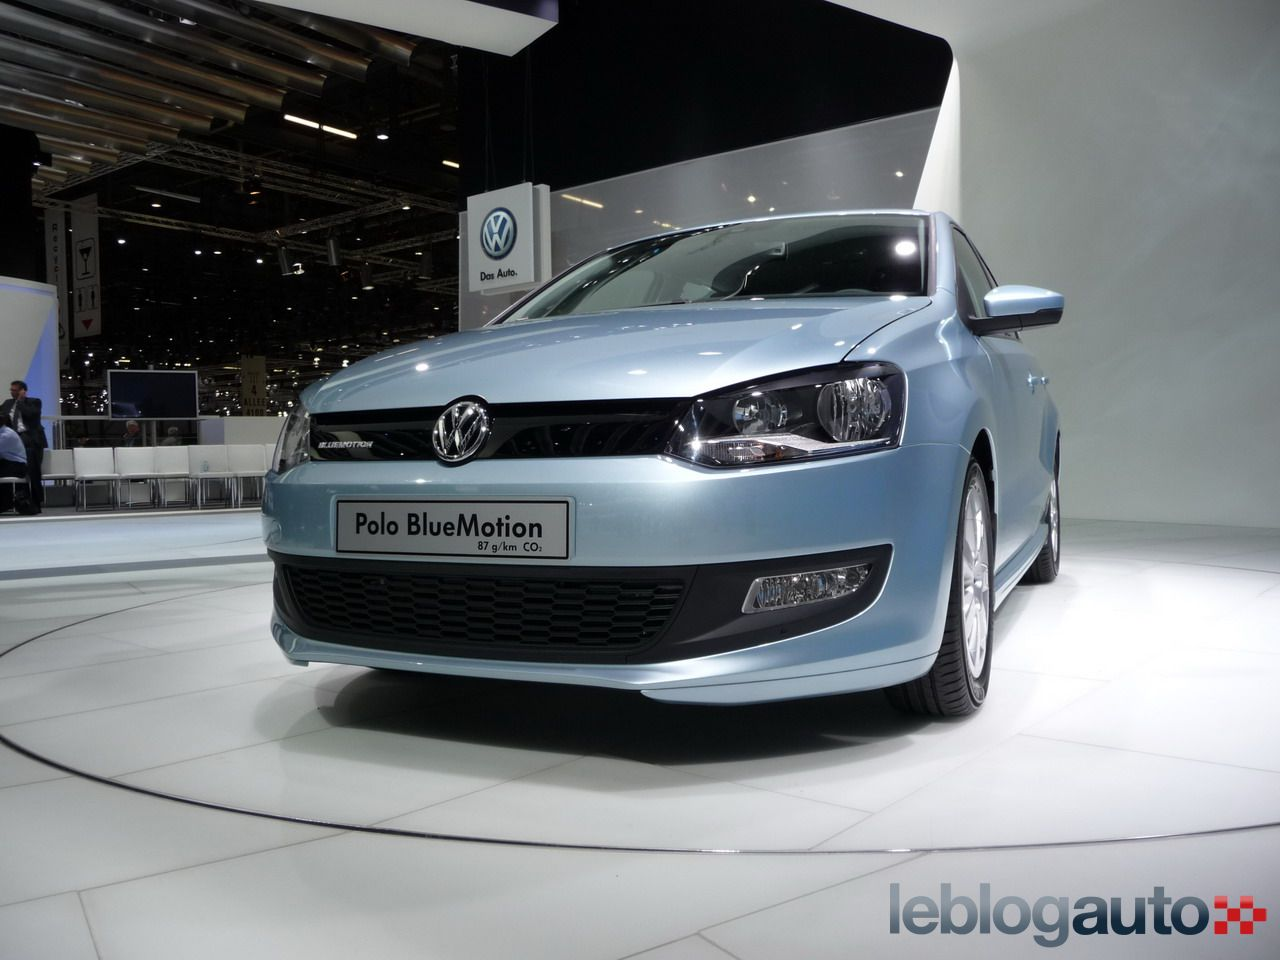 2009 Volkswagen Polo BlueMotion Concept photo - 3